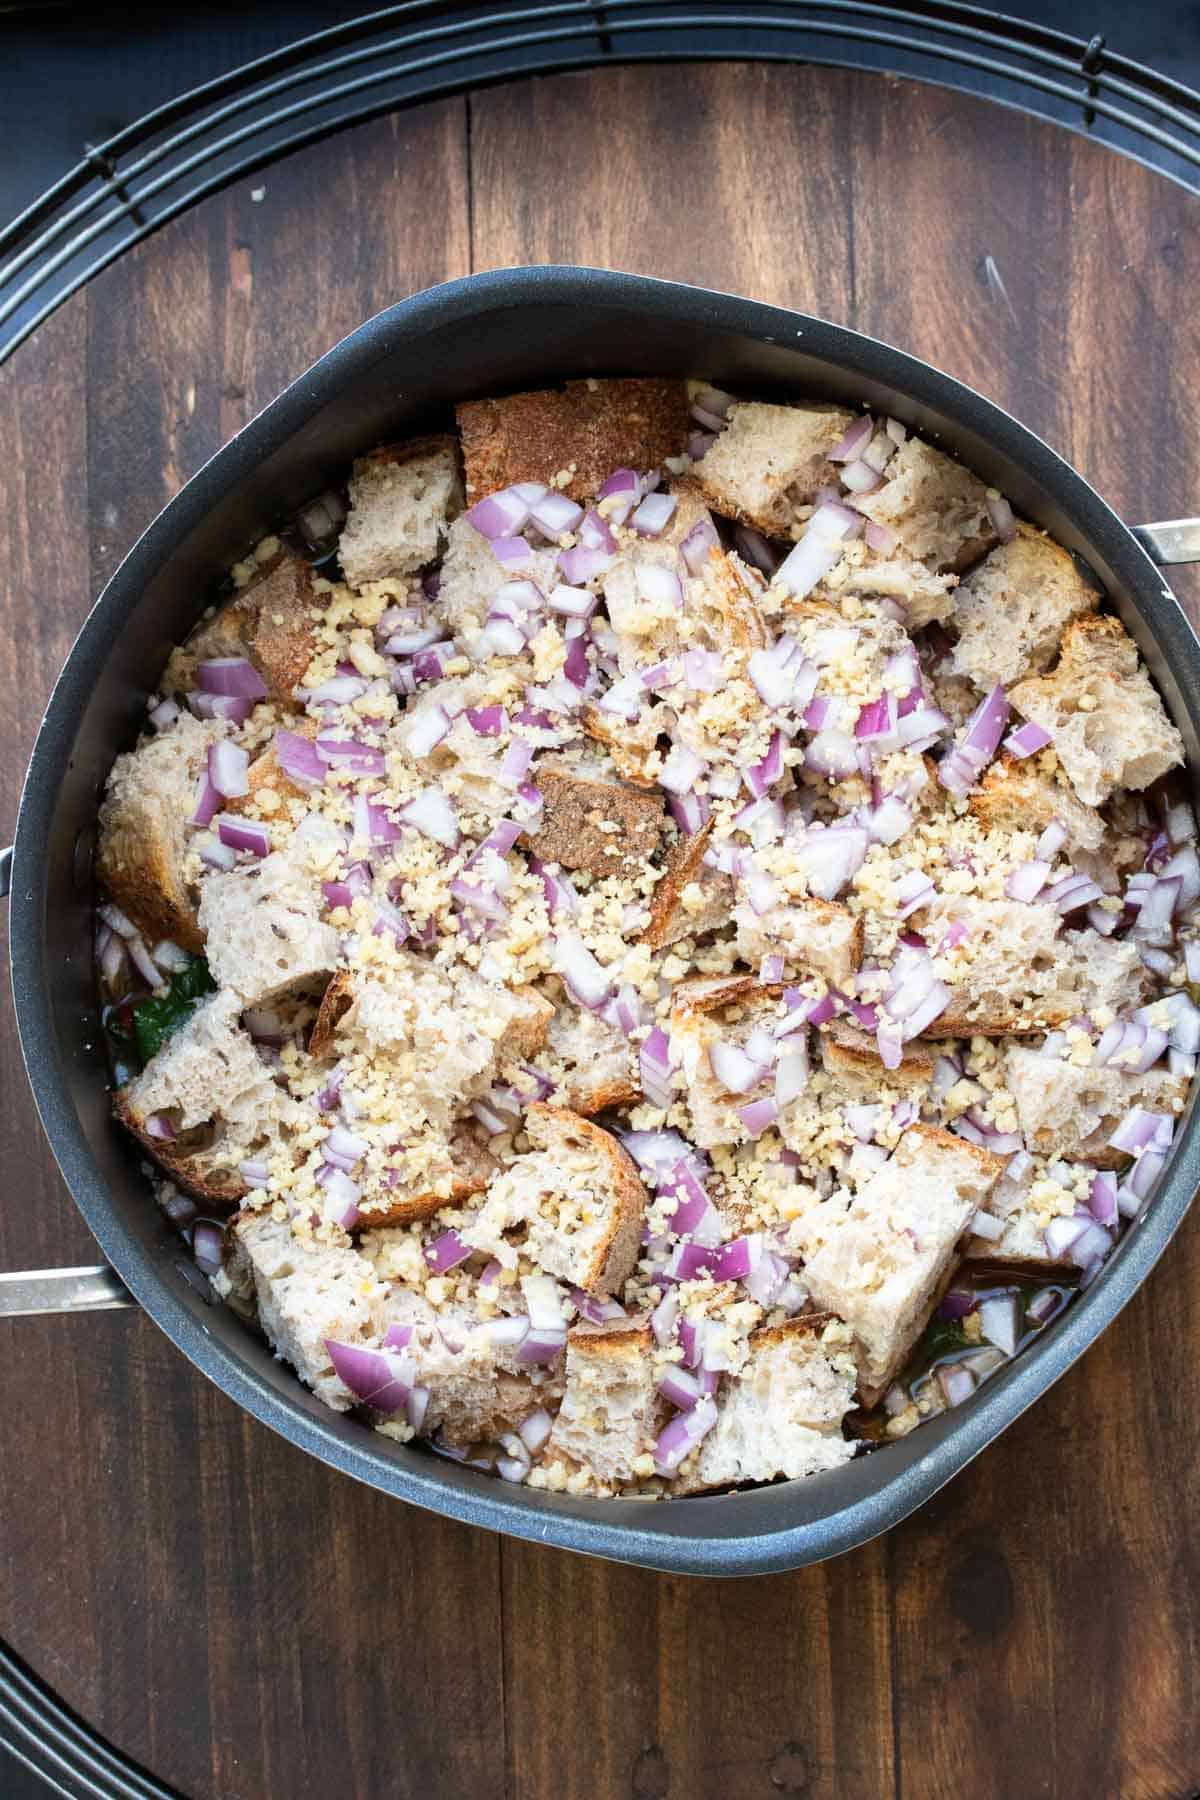 Bread cubes and chopped red onion on top of soup in a pot